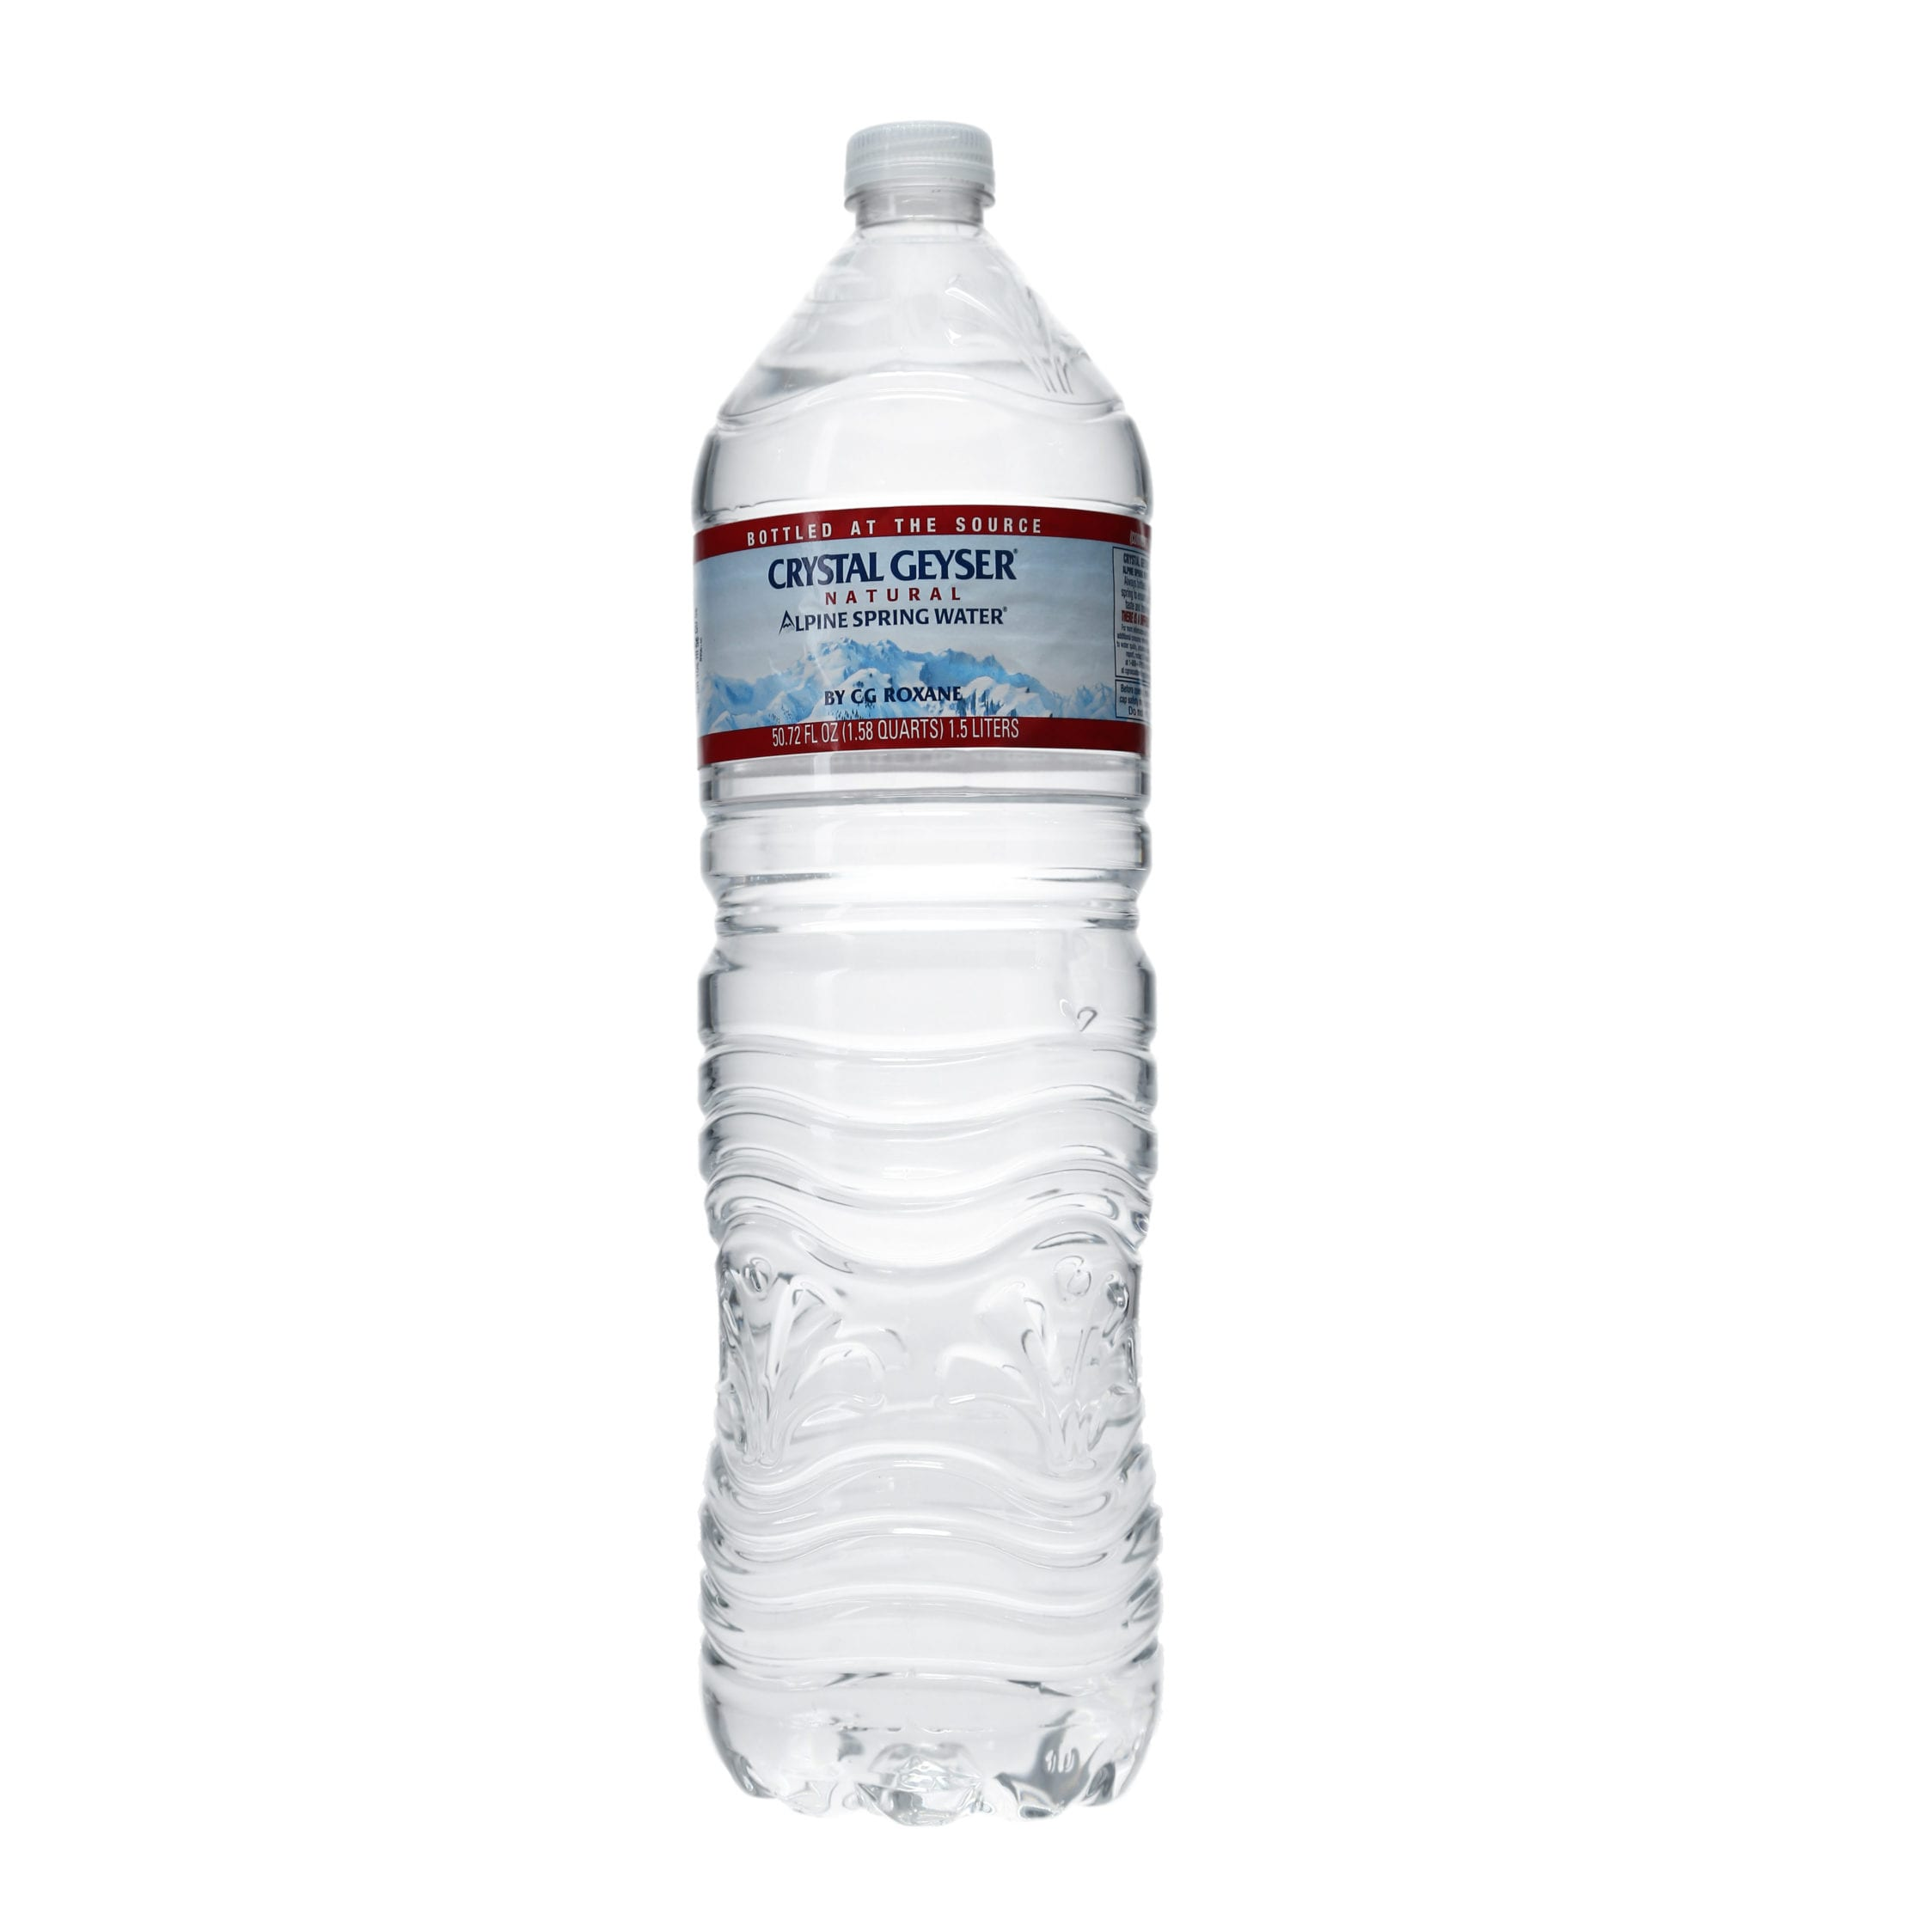 Ortery photography example grocery product clear water bottle shot in PhotoBench 280 on a transparent background